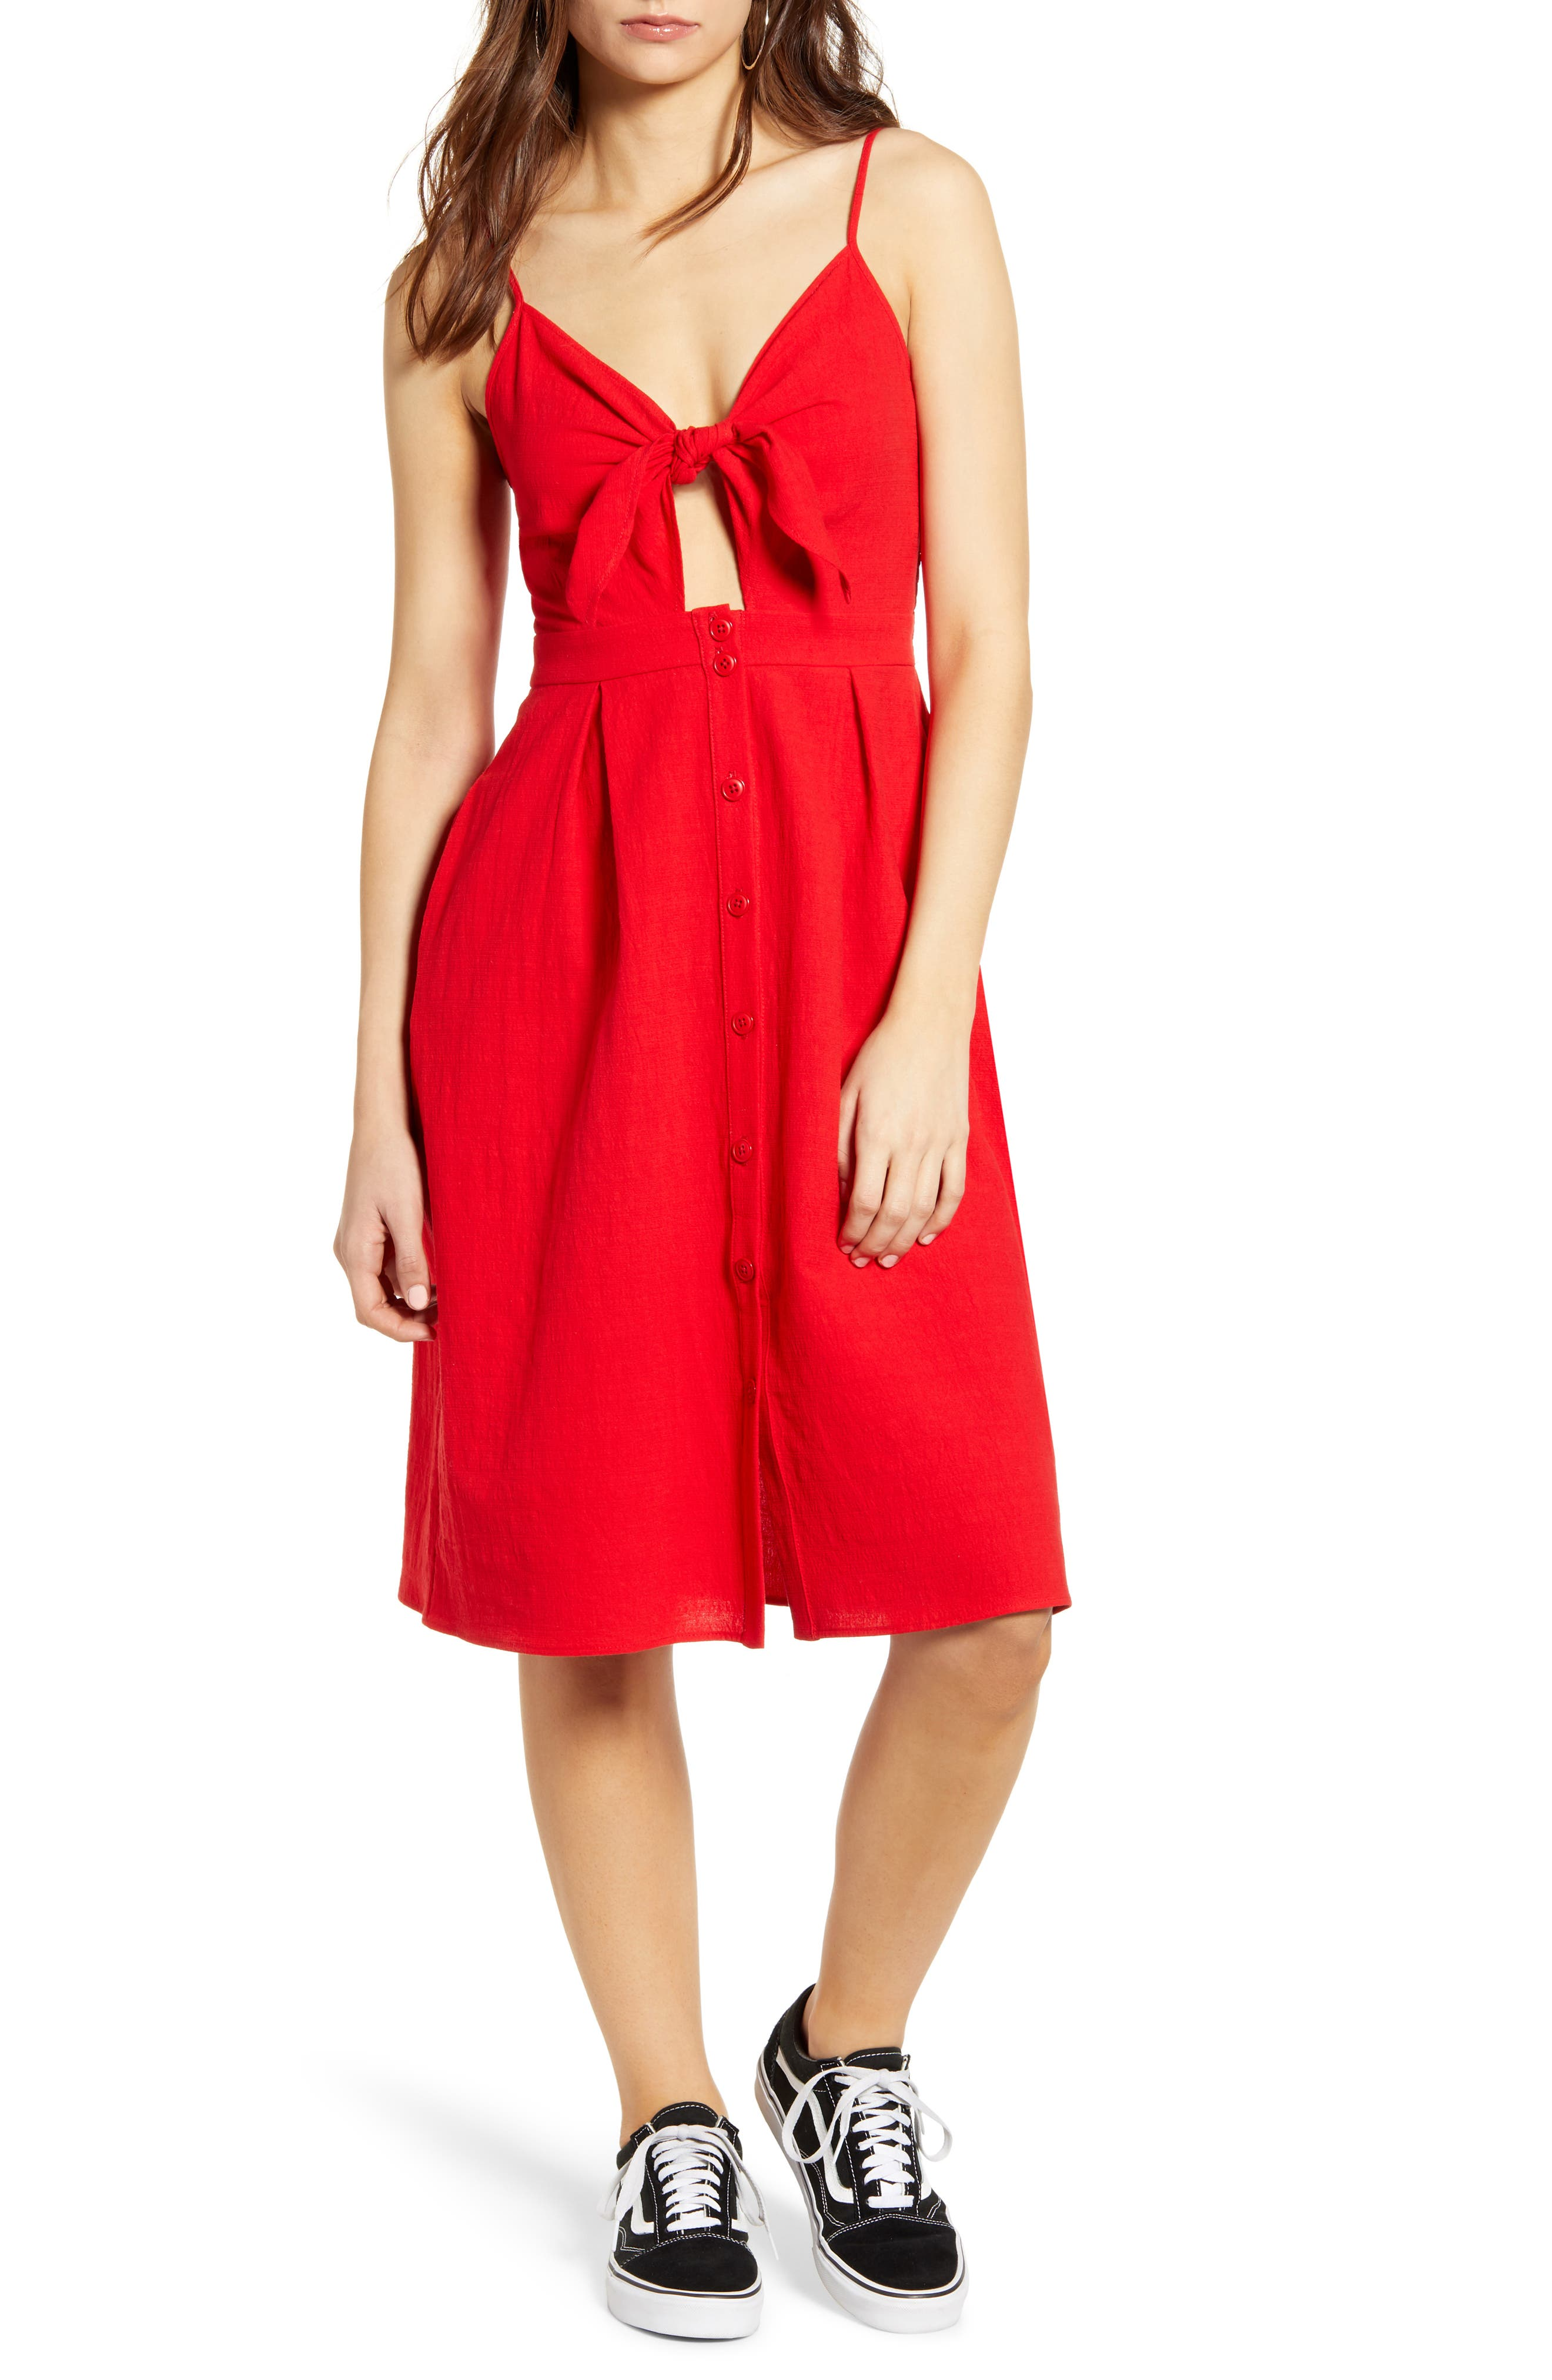 One Clothing Keyhole Button Front Dress, Red